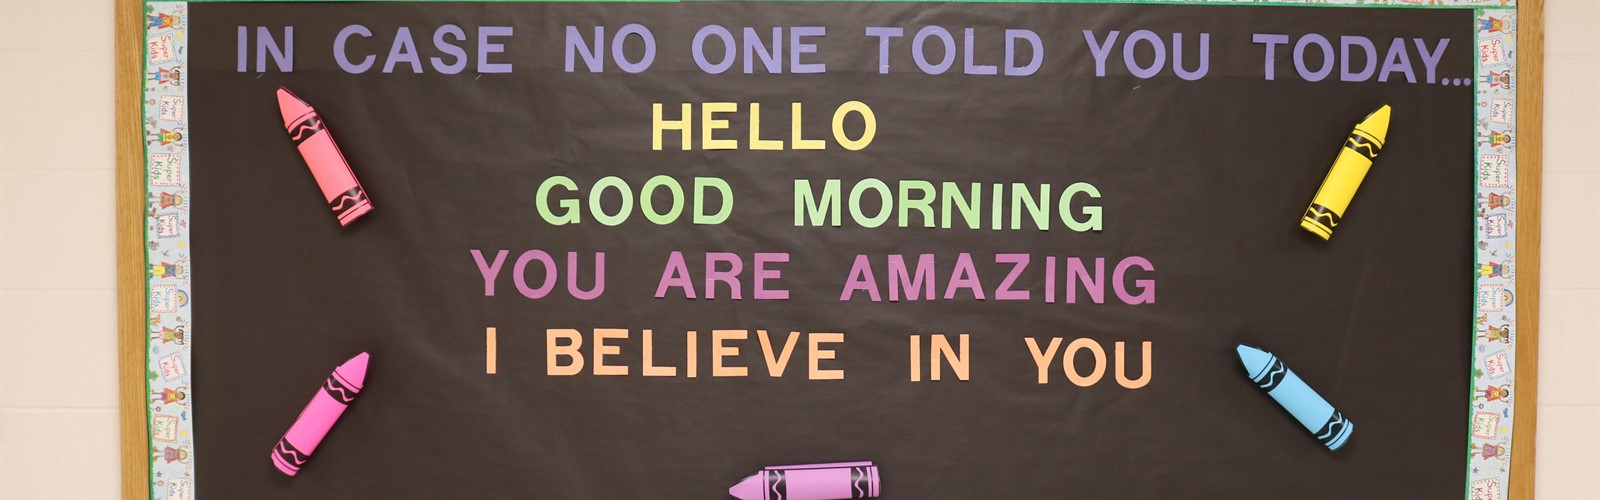 "Bulletin board saying, ""In case no one told you today...hello, good morning, you are amazing, I believe in you."""